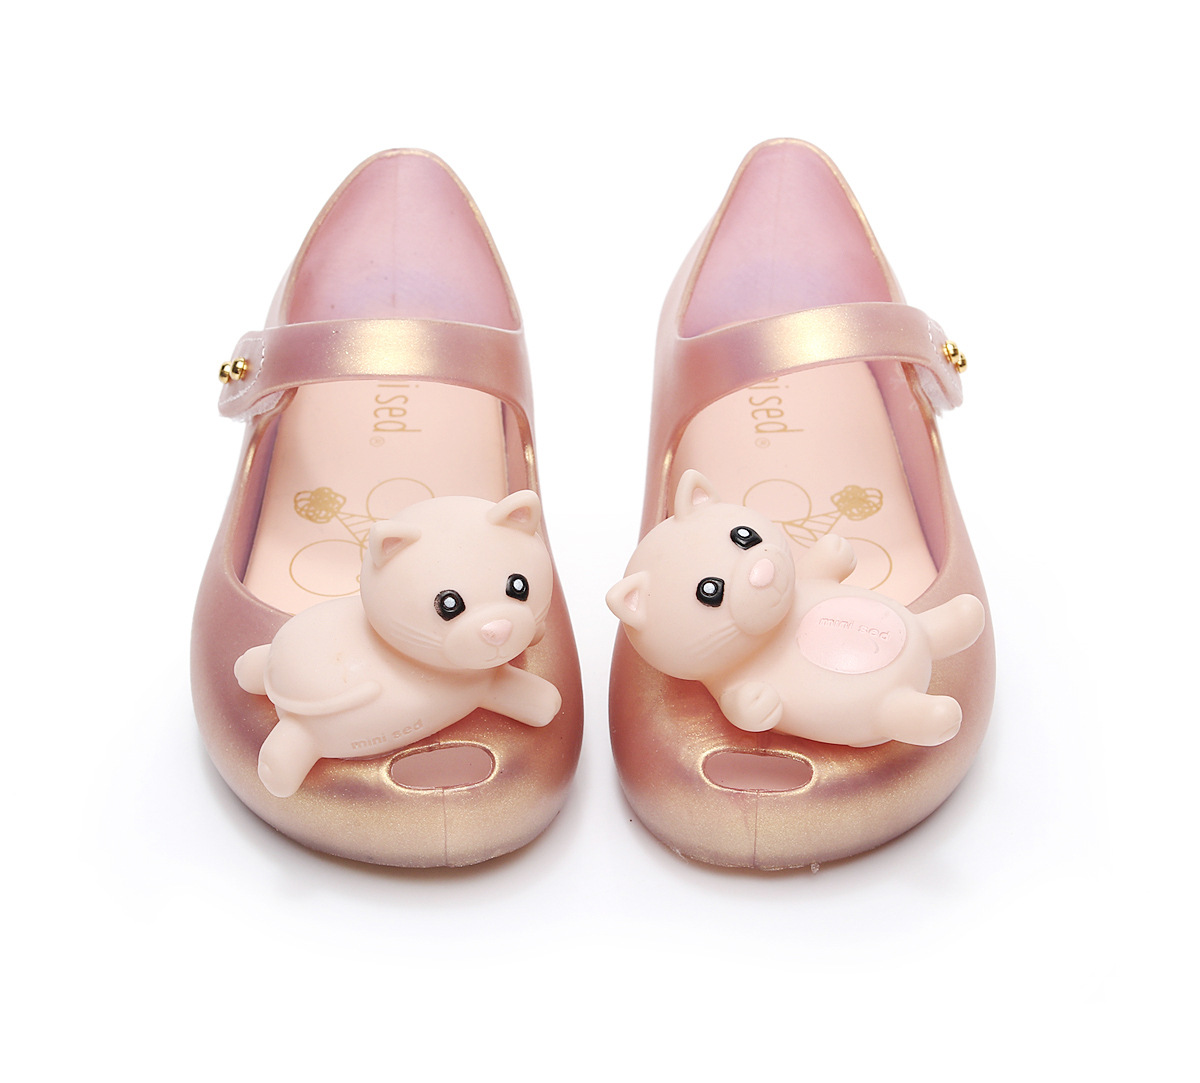 2018 Mini Hole Summer Jelly Childrens Shoes Hot Sale Plain Rain Boot Baby Children Toddler Kids Sandals